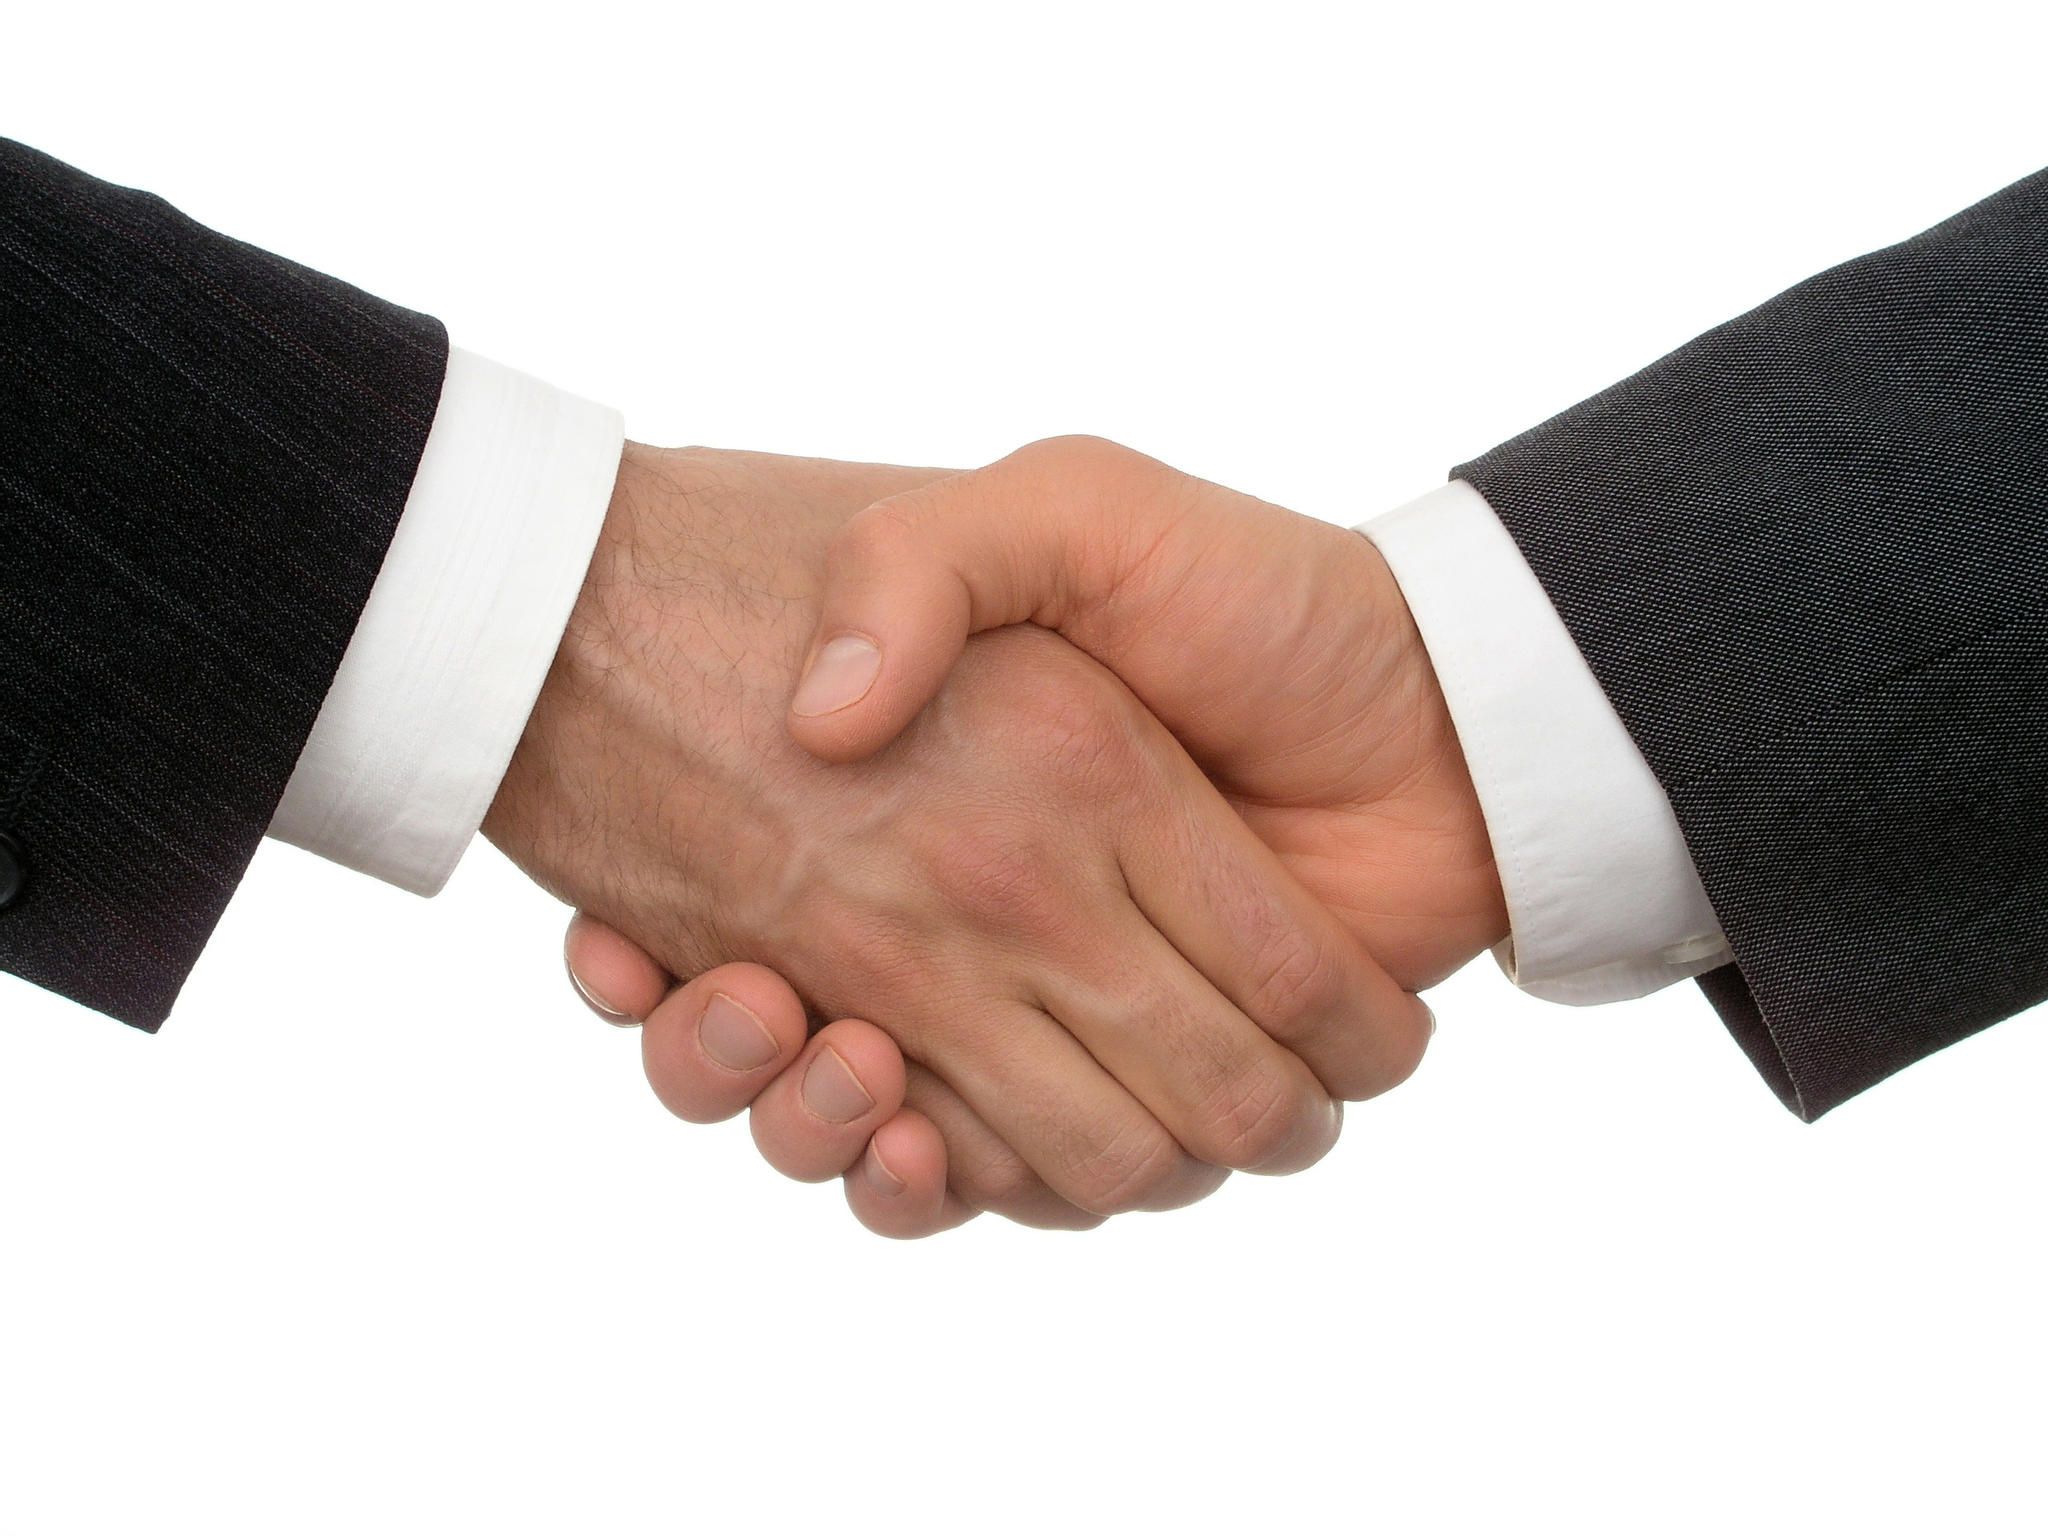 Our Handshake is Our Contract - Handshake PNG HD